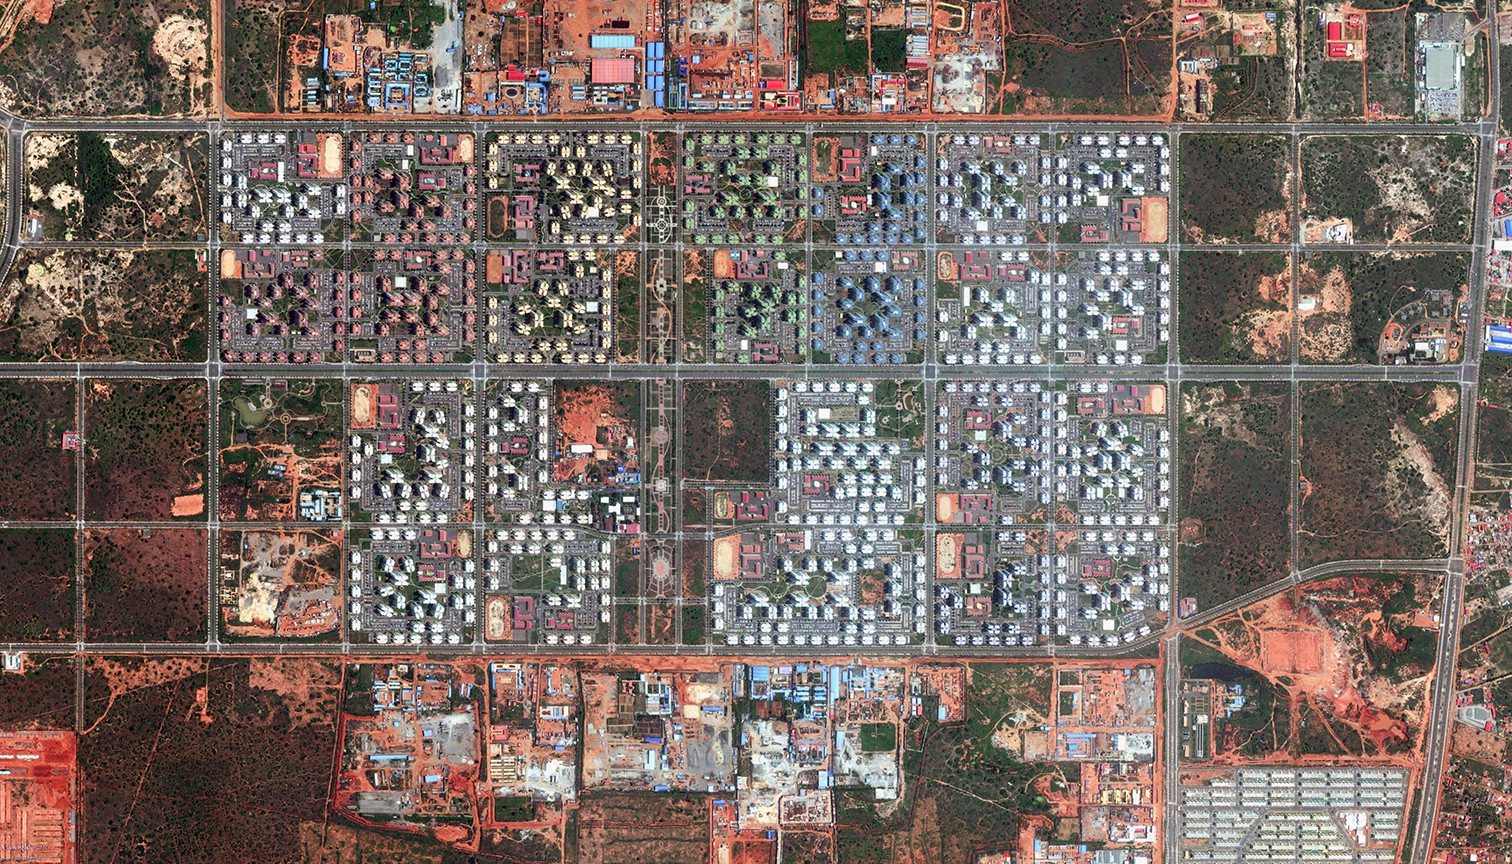 Facing East: Chinese Urbanism in Africa, Kilamba Kiaxi in Luanda, Angola